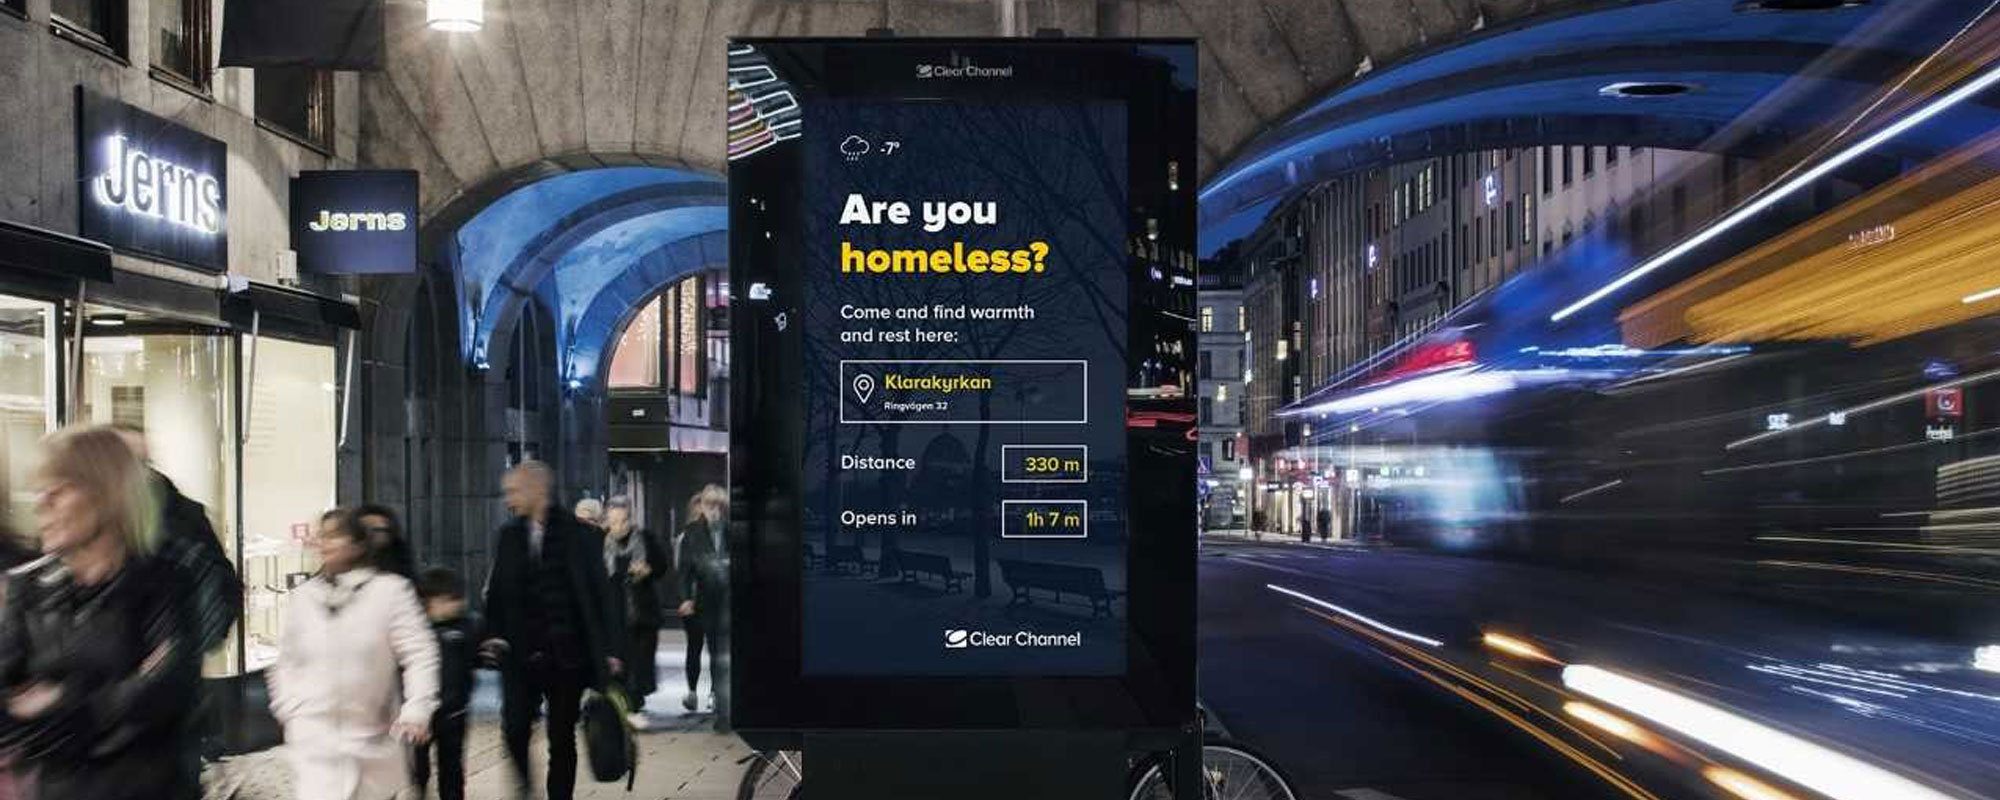 Clear Channel Sweden help the homeless in OOH campaign | Rapport